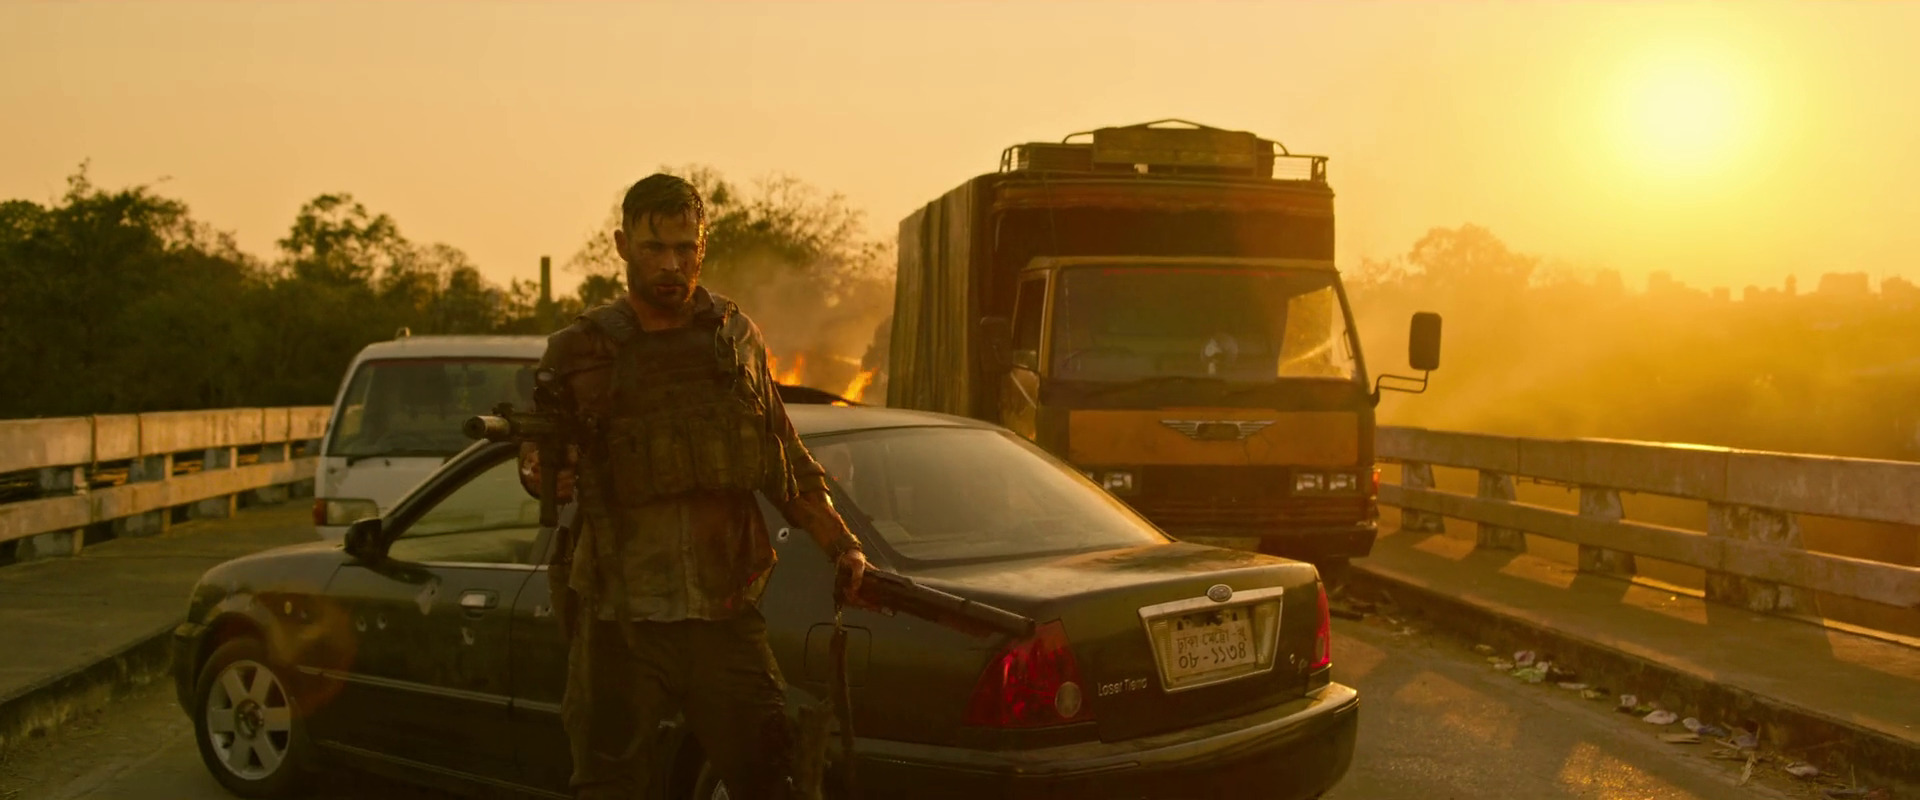 Extraction Is Yet Another White Savior Blockbuster By Johnnie Yu Text Color Medium